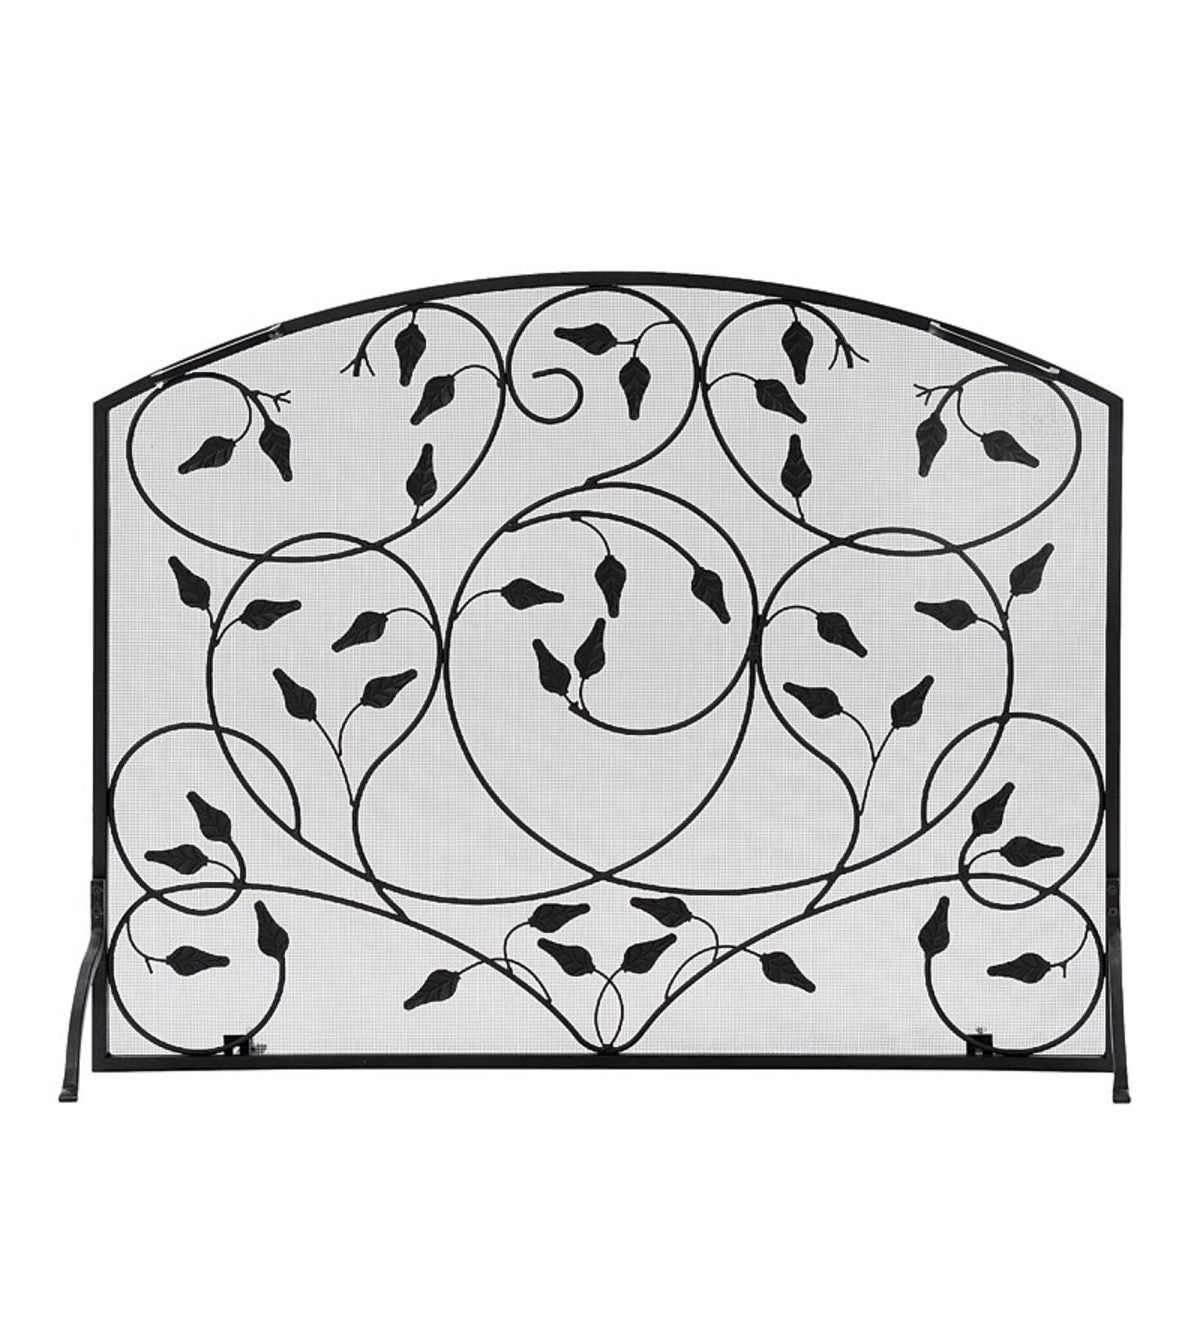 Wrought Iron Leaves Single Panel Fireplace Screen - Black